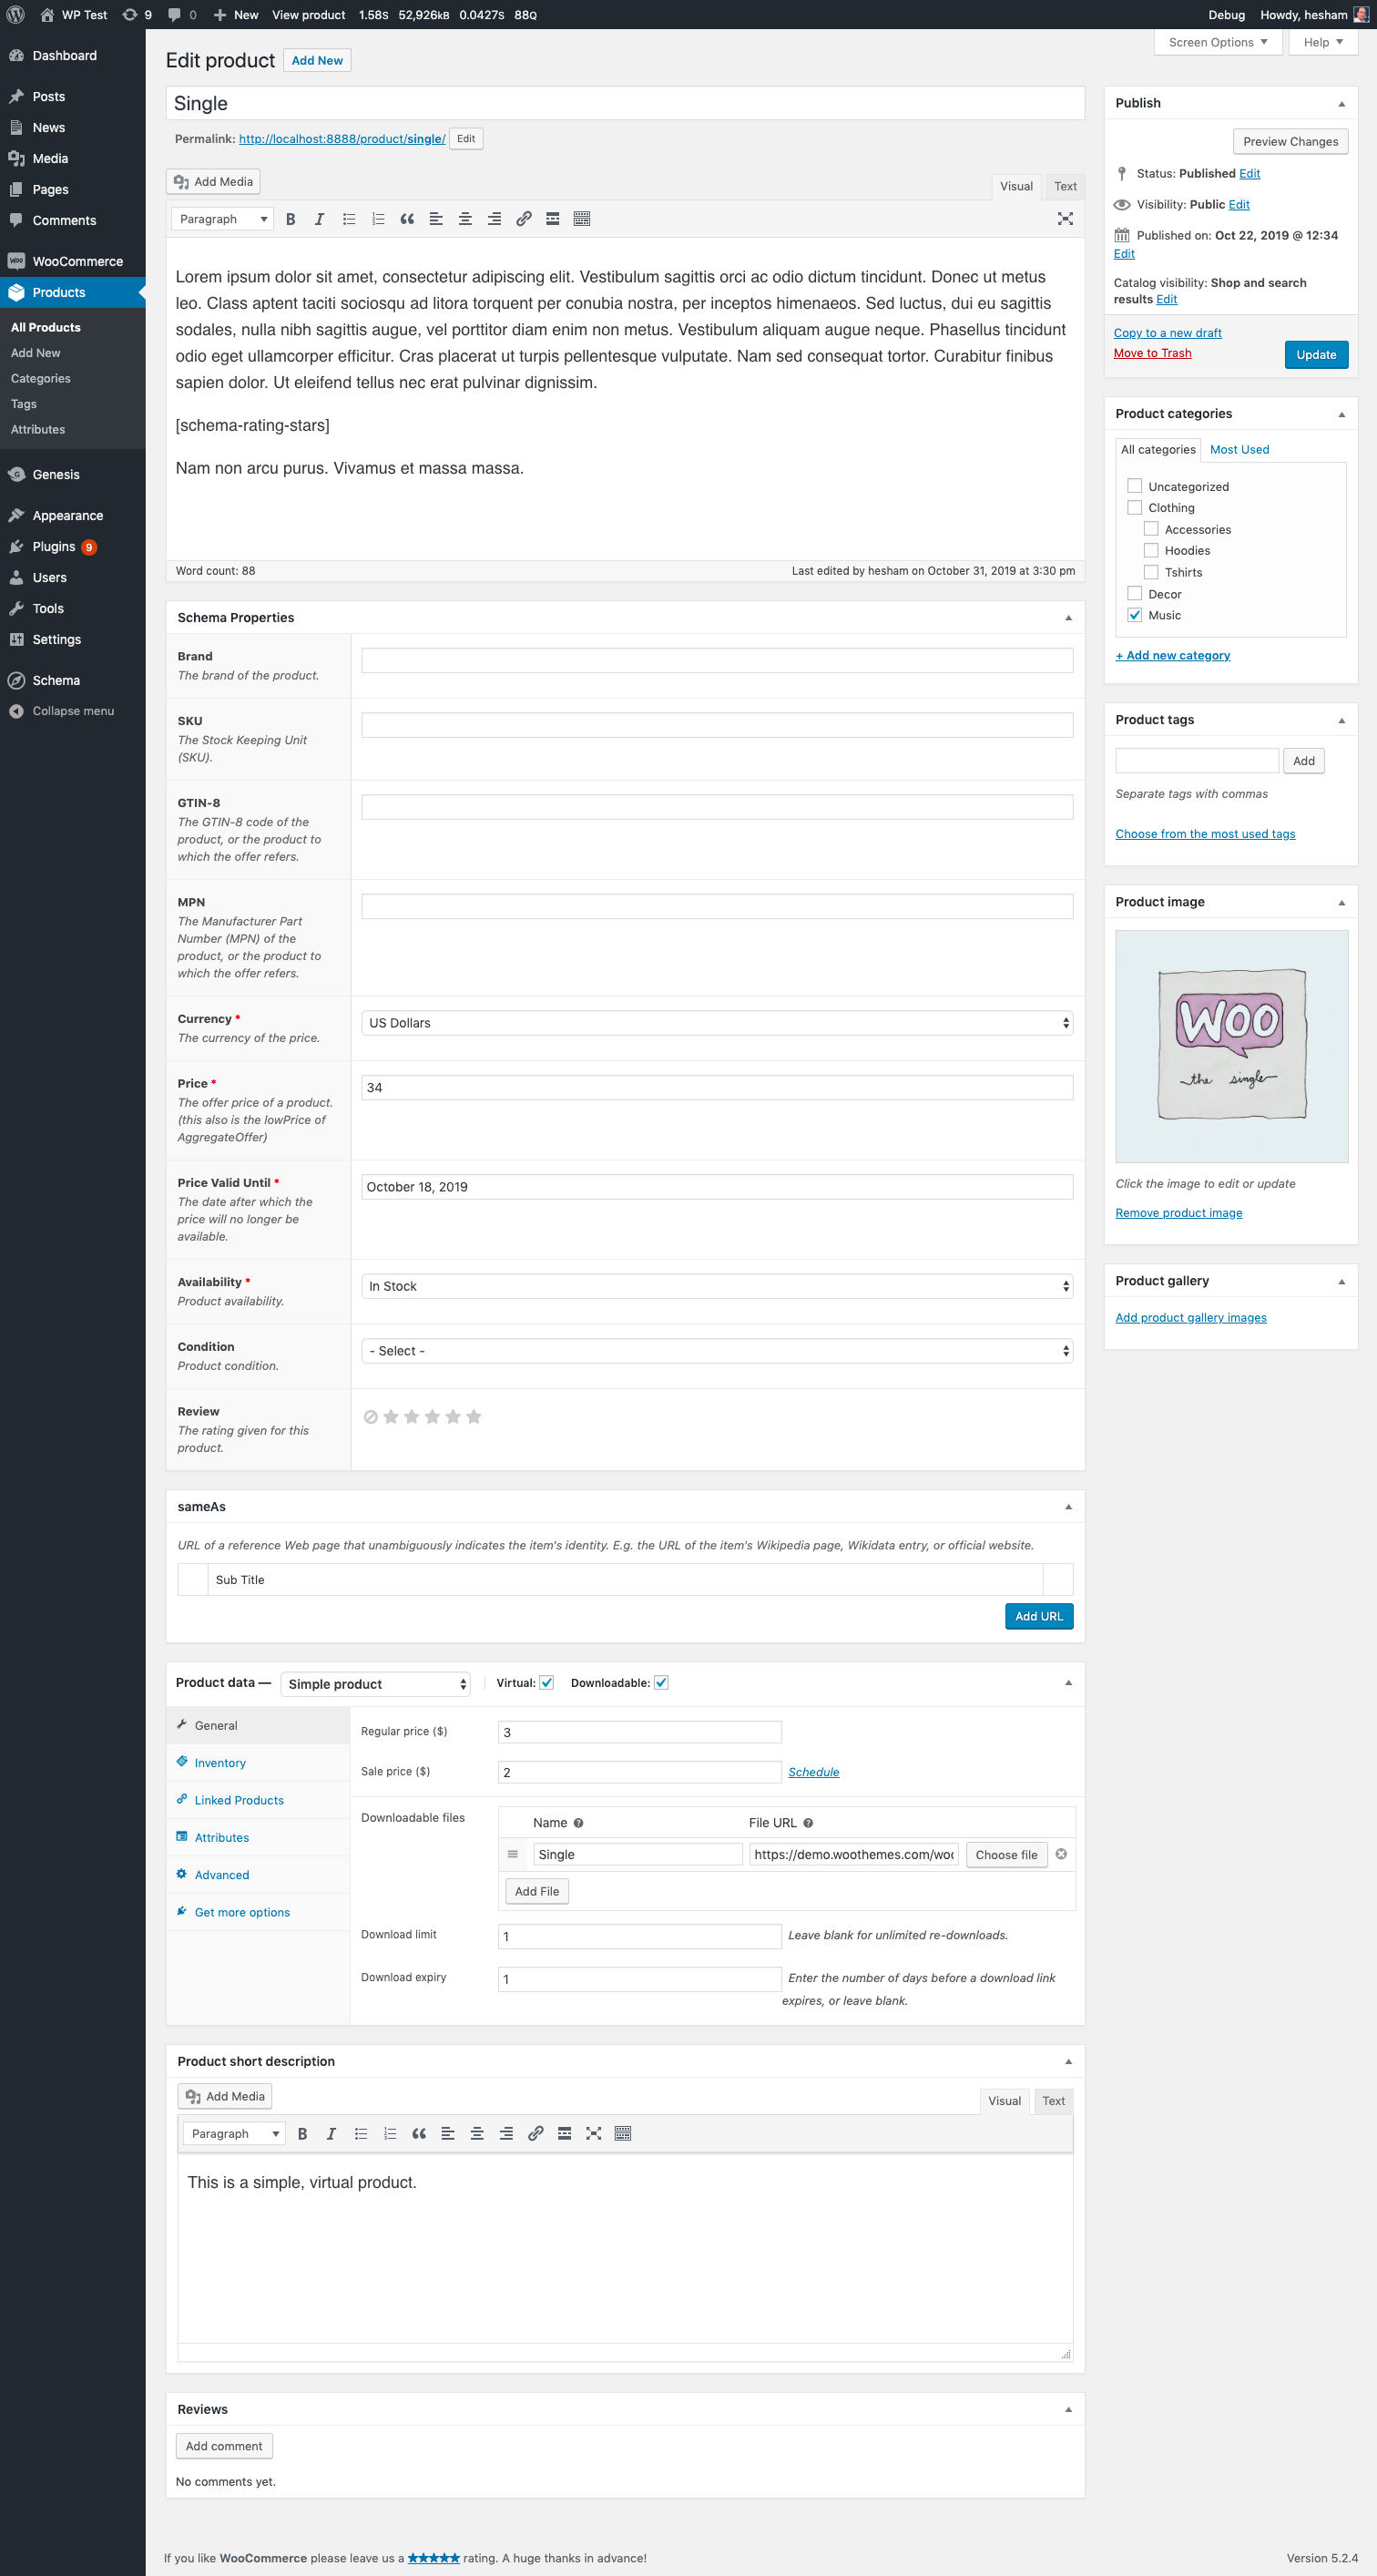 Schema on WooCommerce product page